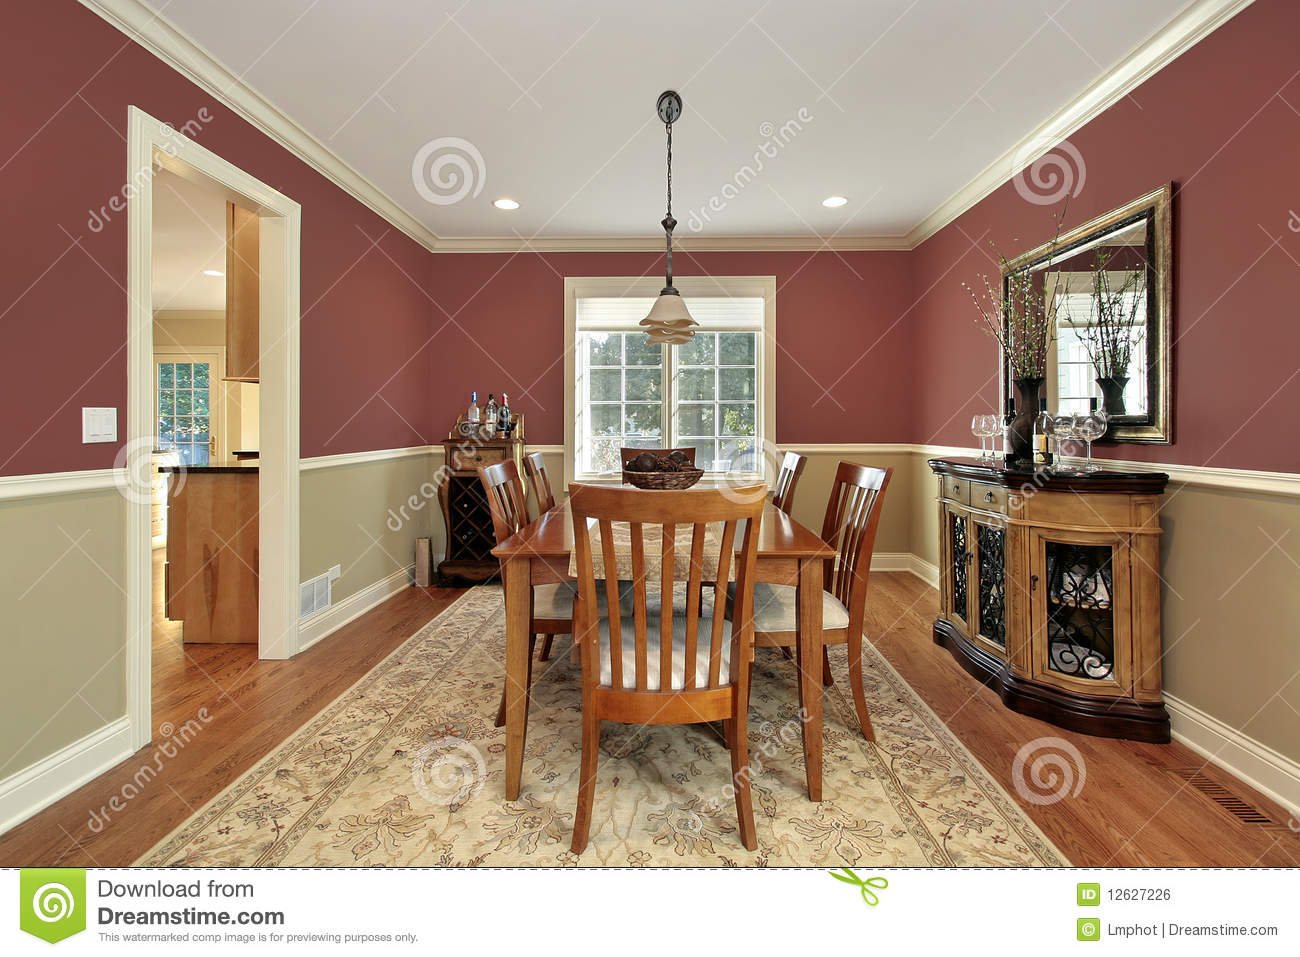 dining room with two toned walls stock photo - image of suburban